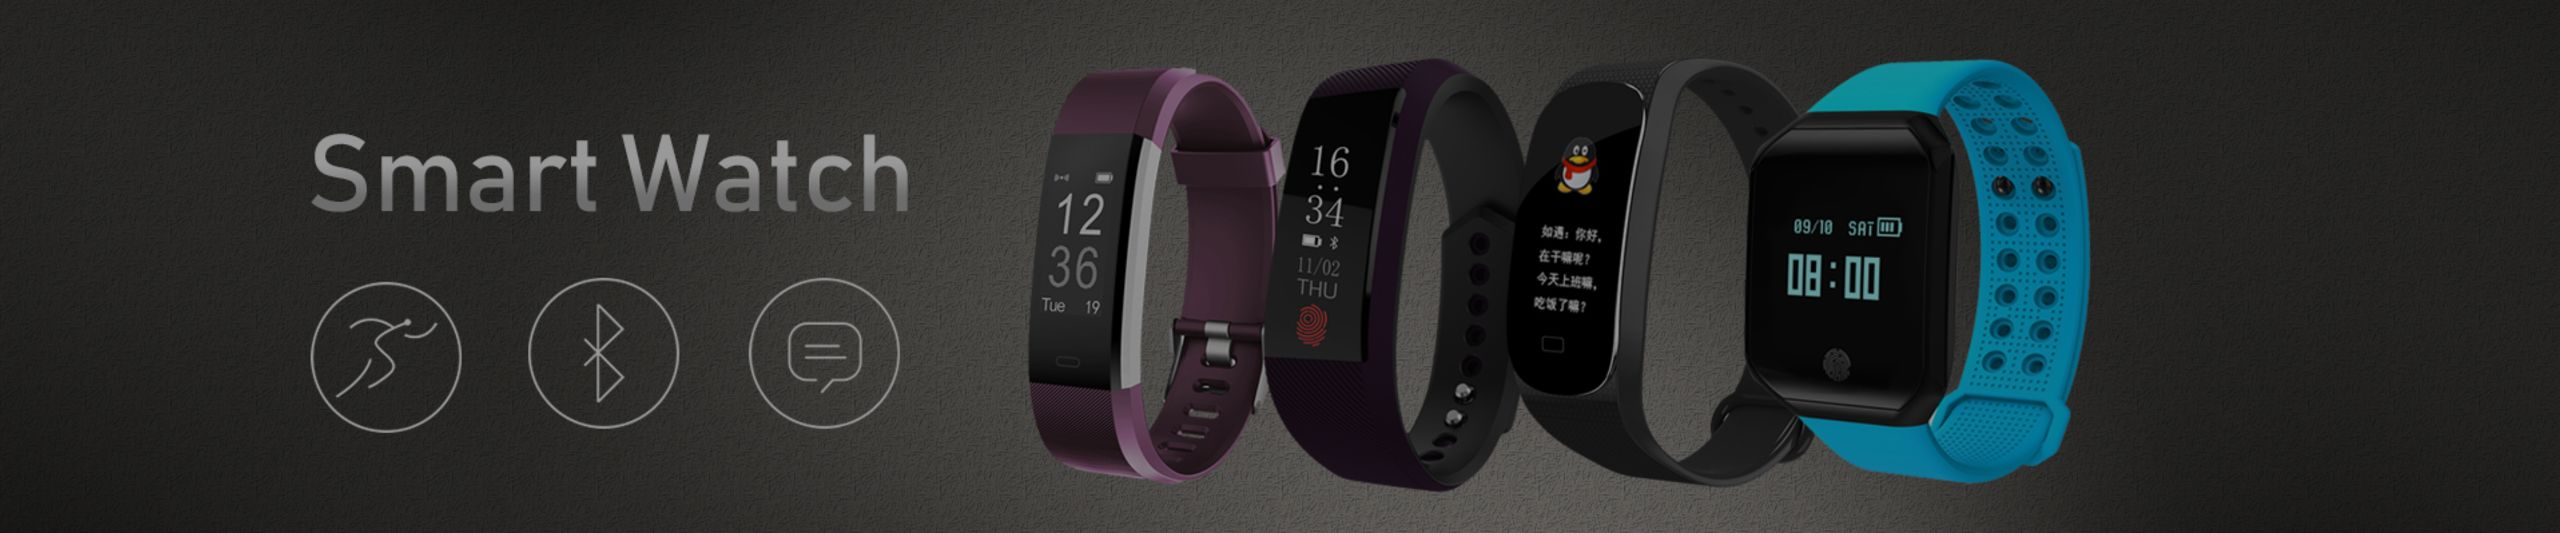 Smart watches could help detect heart attack, study finds…